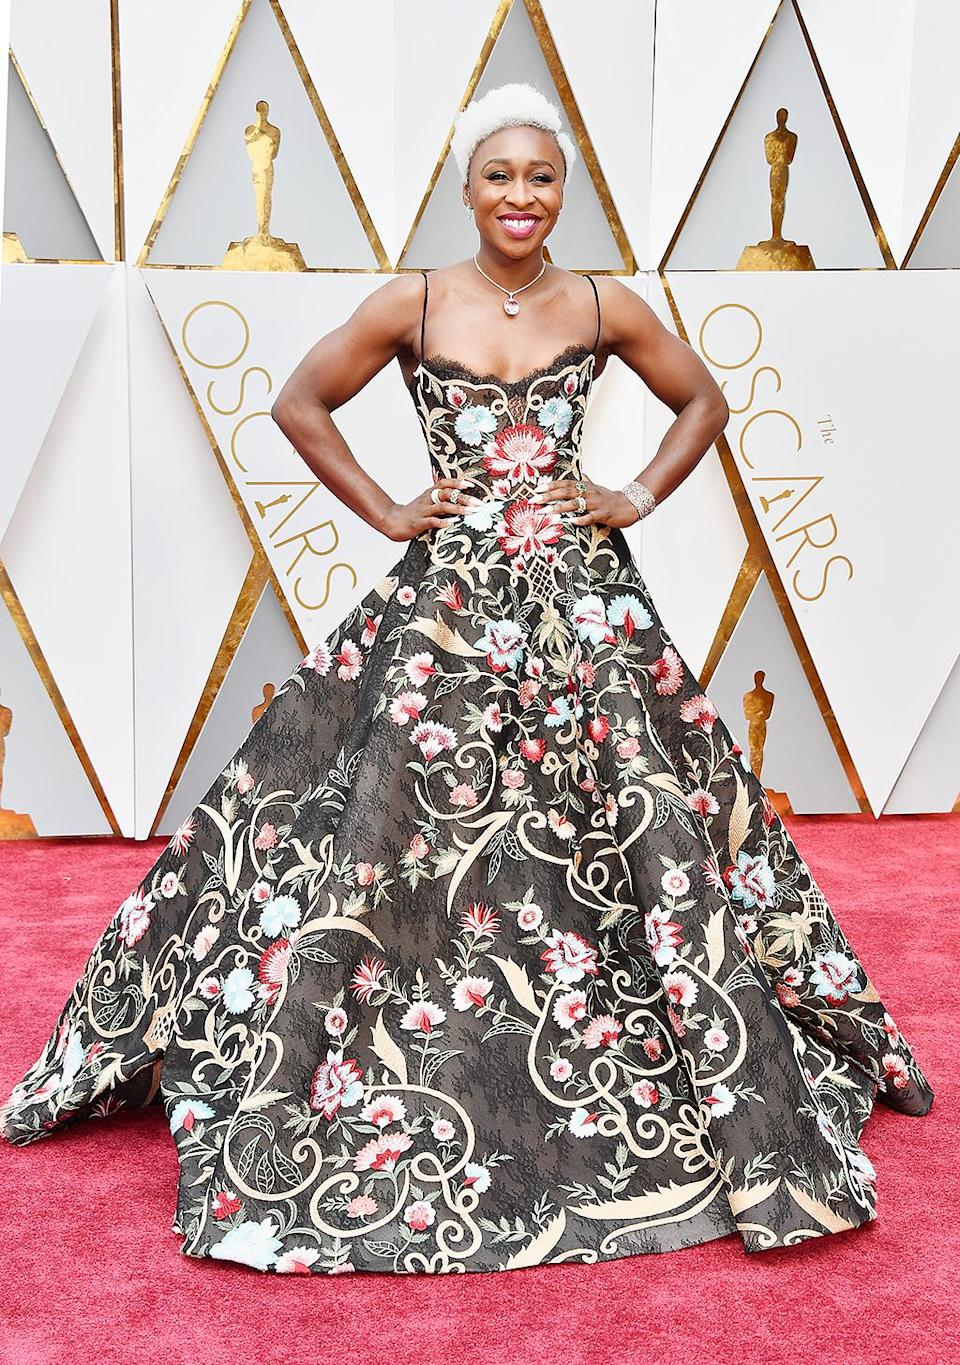 <p>Cynthia Erivo attends the 89th Annual Academy Awards at Hollywood & Highland Center on February 26, 2017 in Hollywood, California. (Photo by Frazer Harrison/Getty Images) </p>